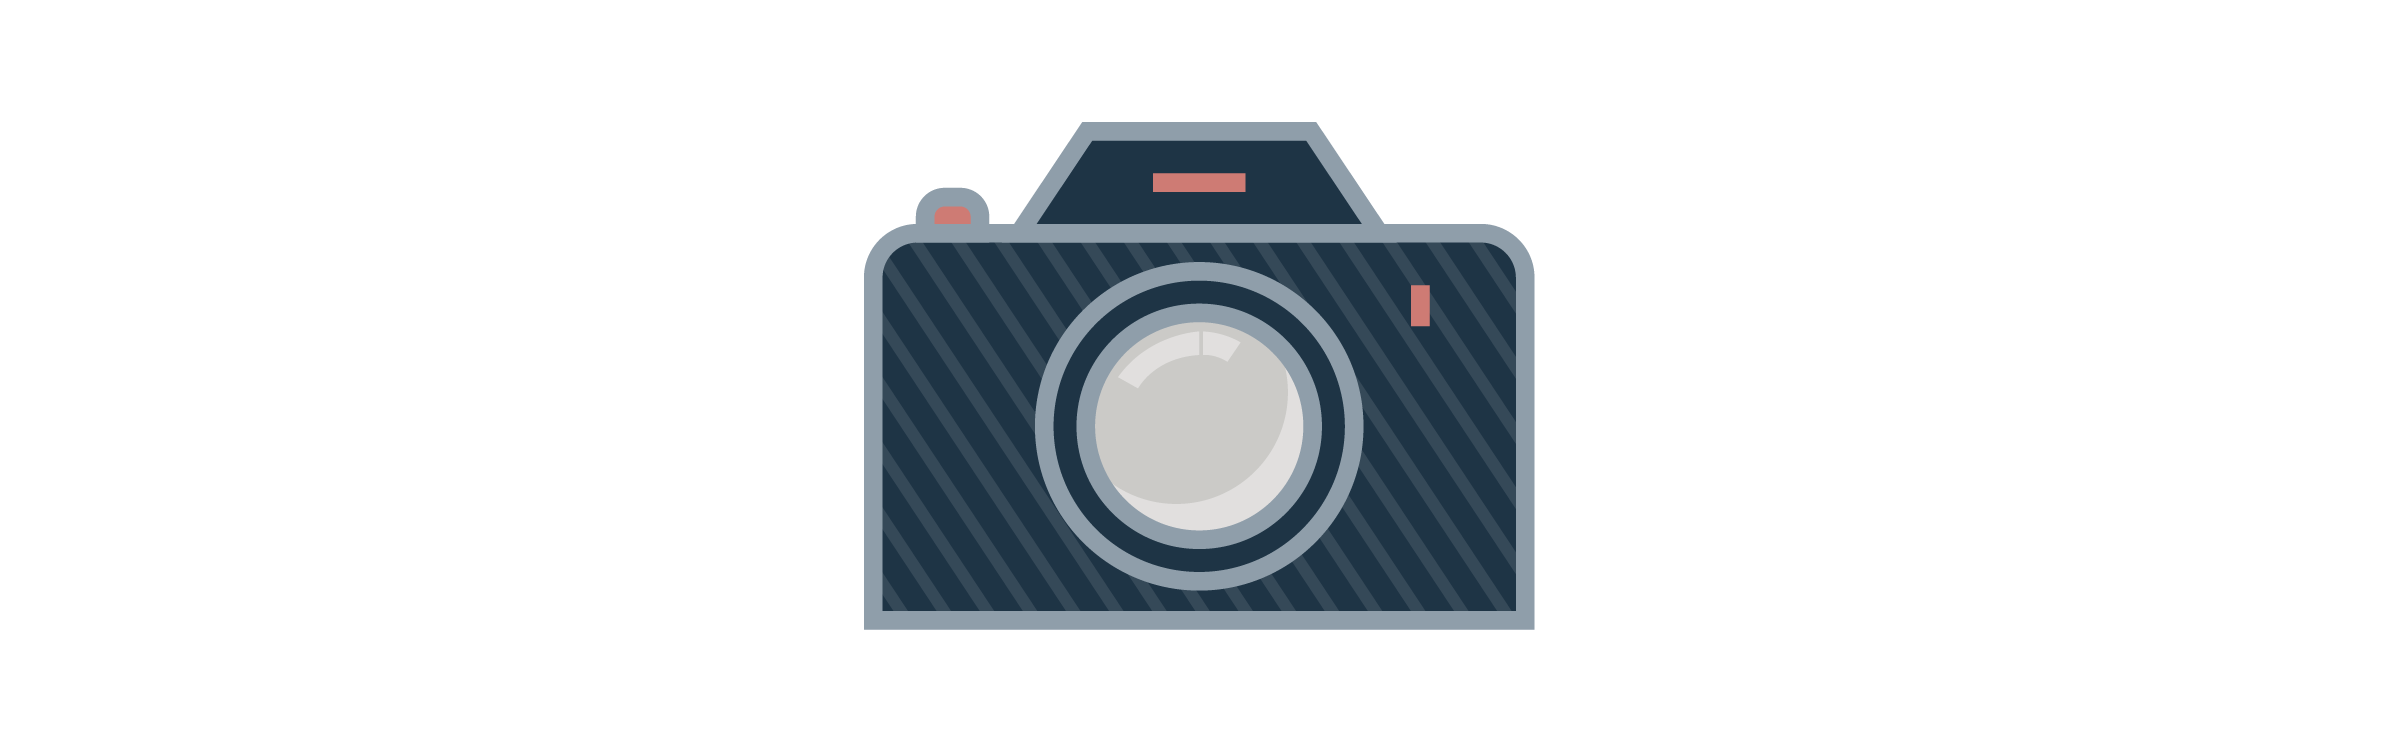 Hobby to Biz mini course for photographers by Cinnamon Wolfe